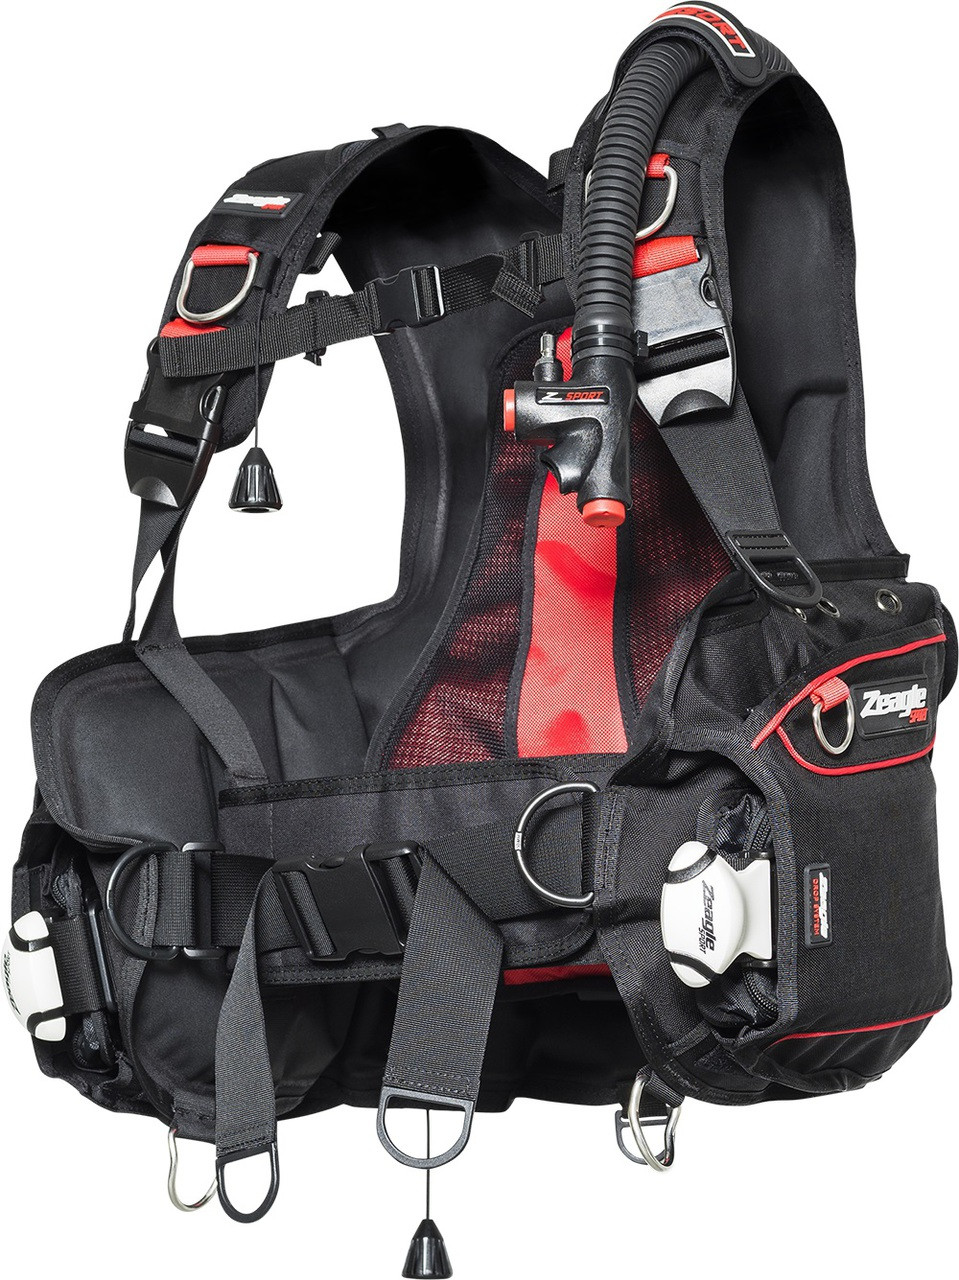 Zeagle Resort BCD Scuba Diving Buoyancy Jacket